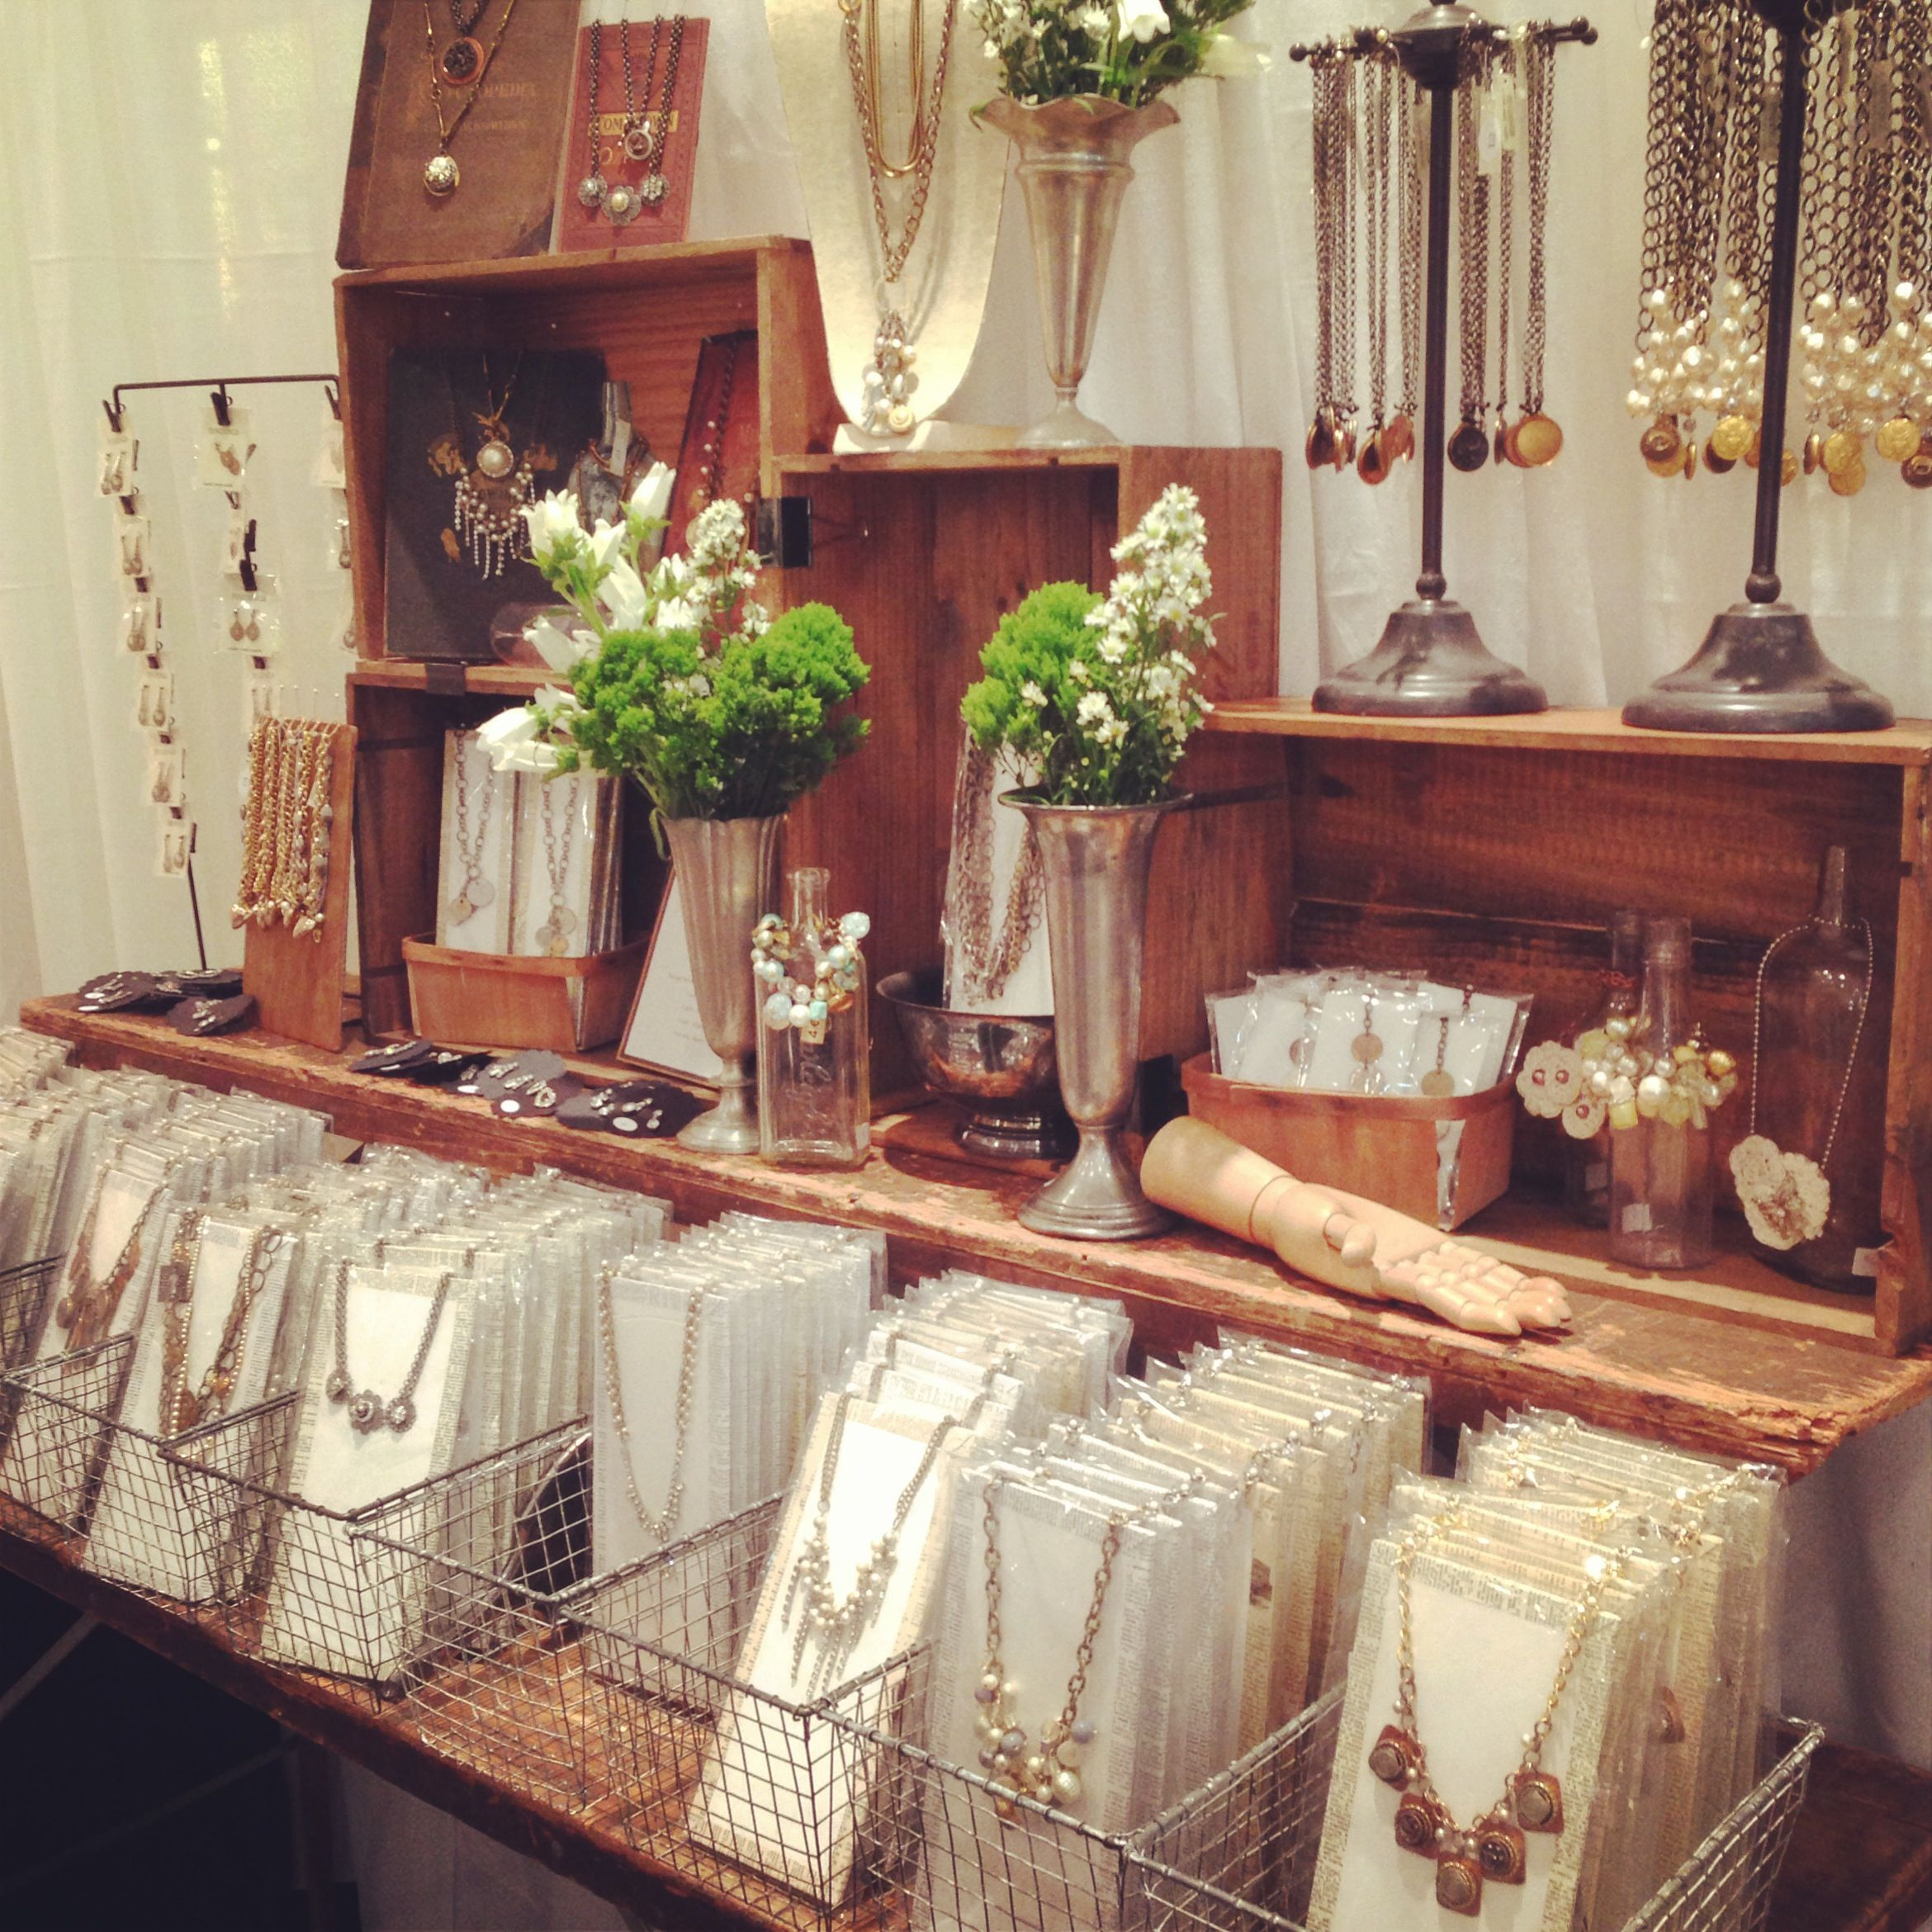 Darling Display Set Up Small Business Jewelry Booth